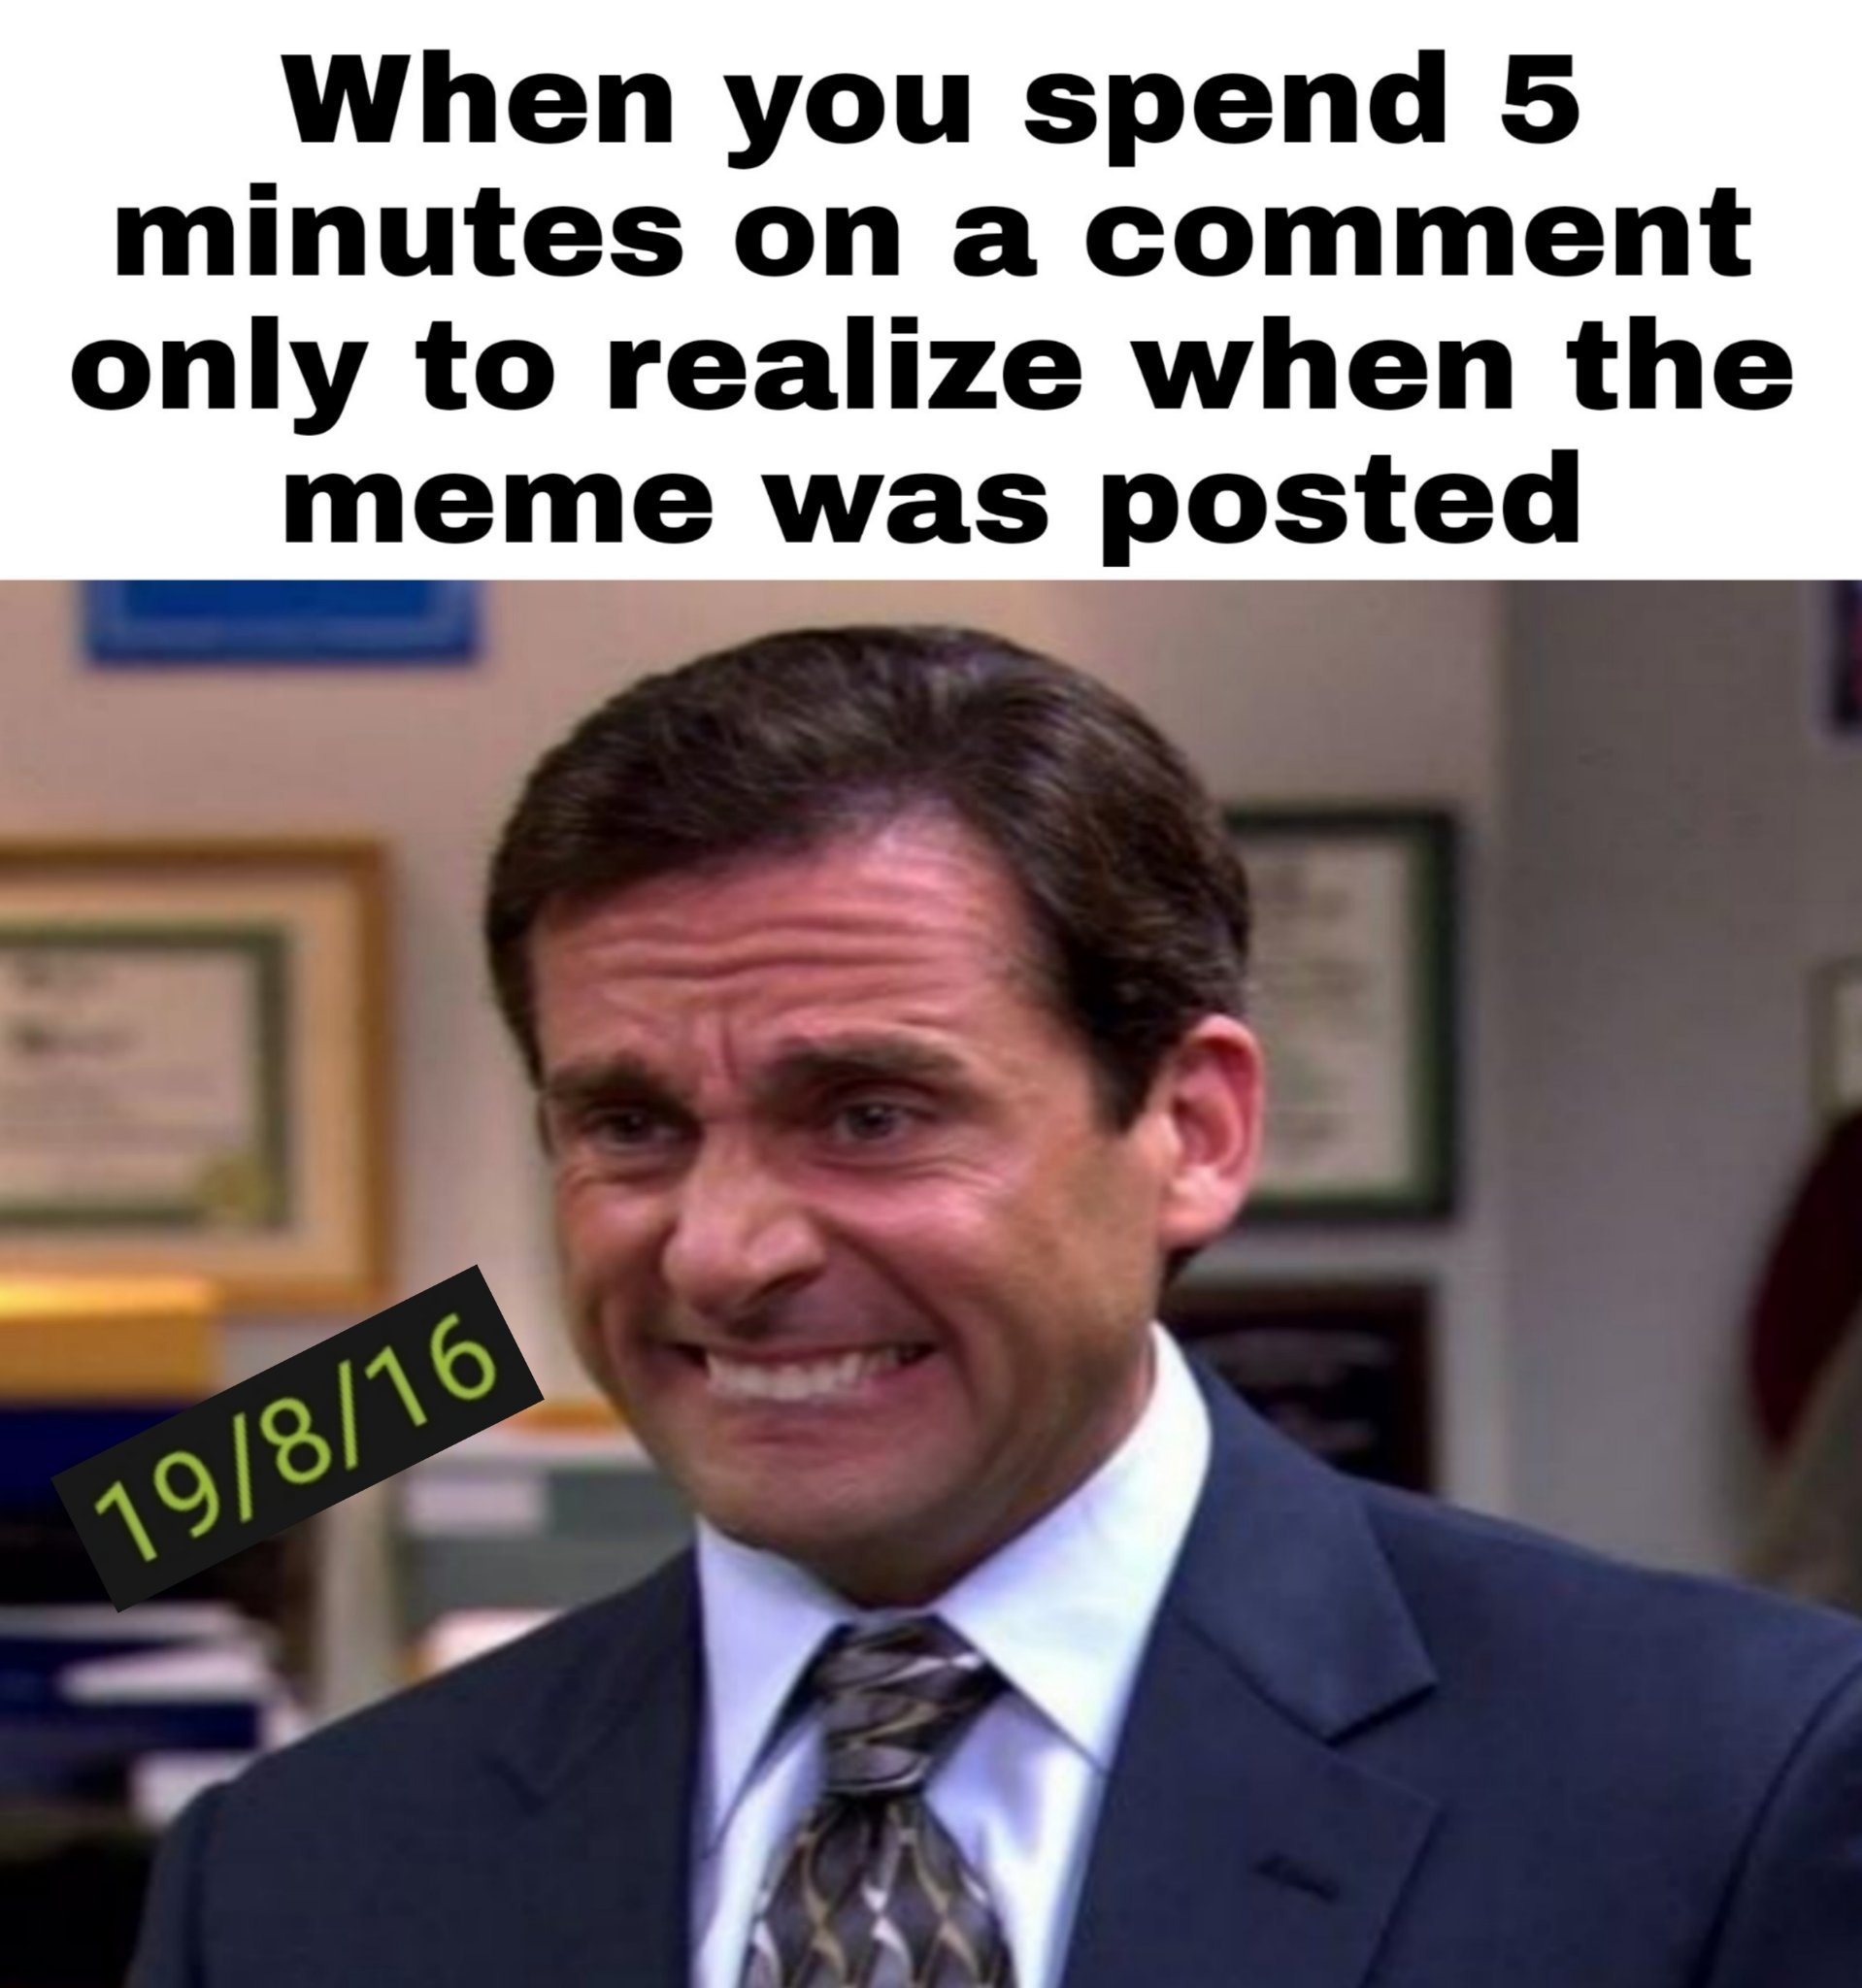 I never comment that much anyway - meme